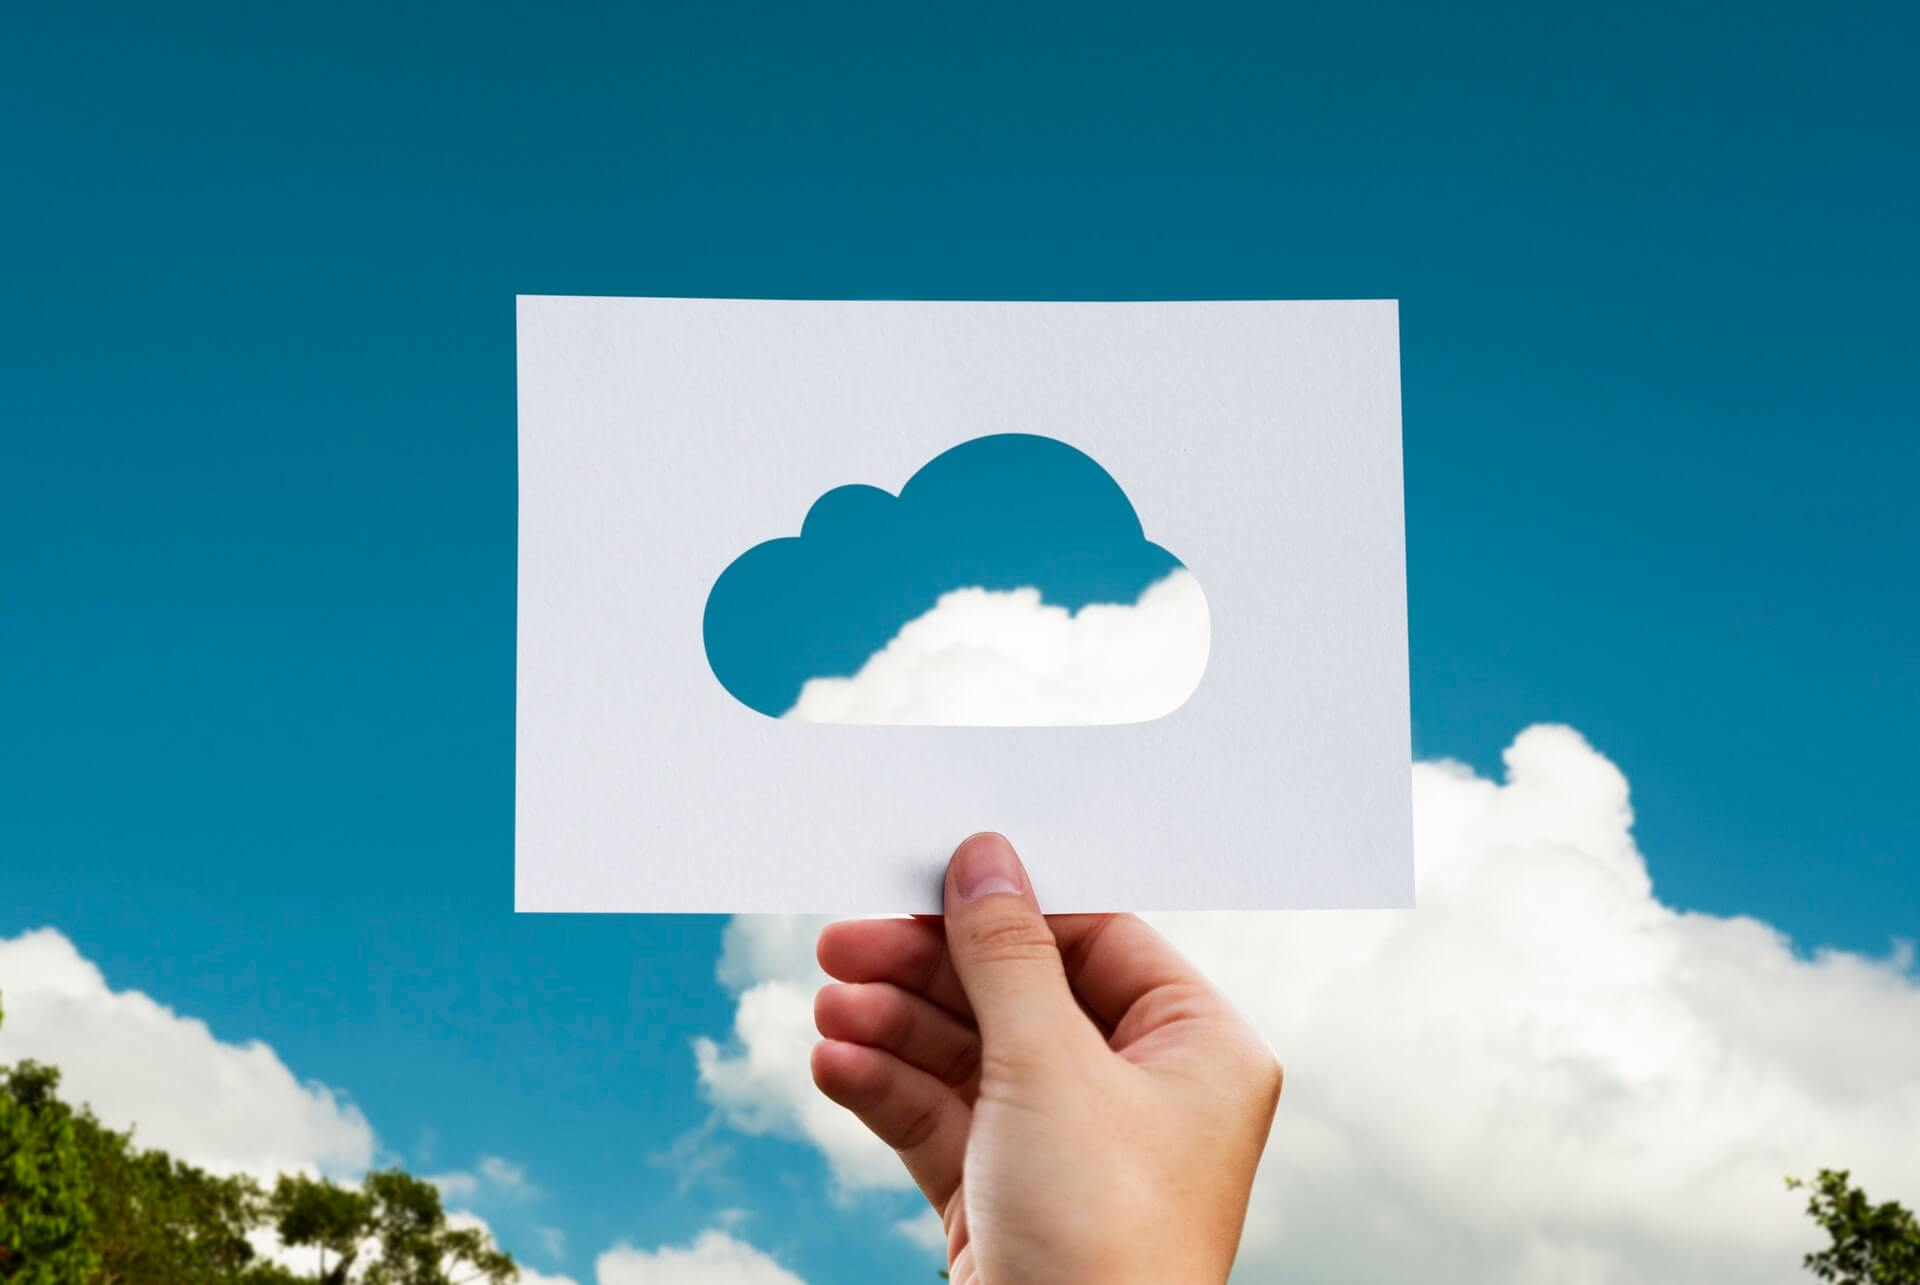 Betting On Azure As Your Cloud Provider